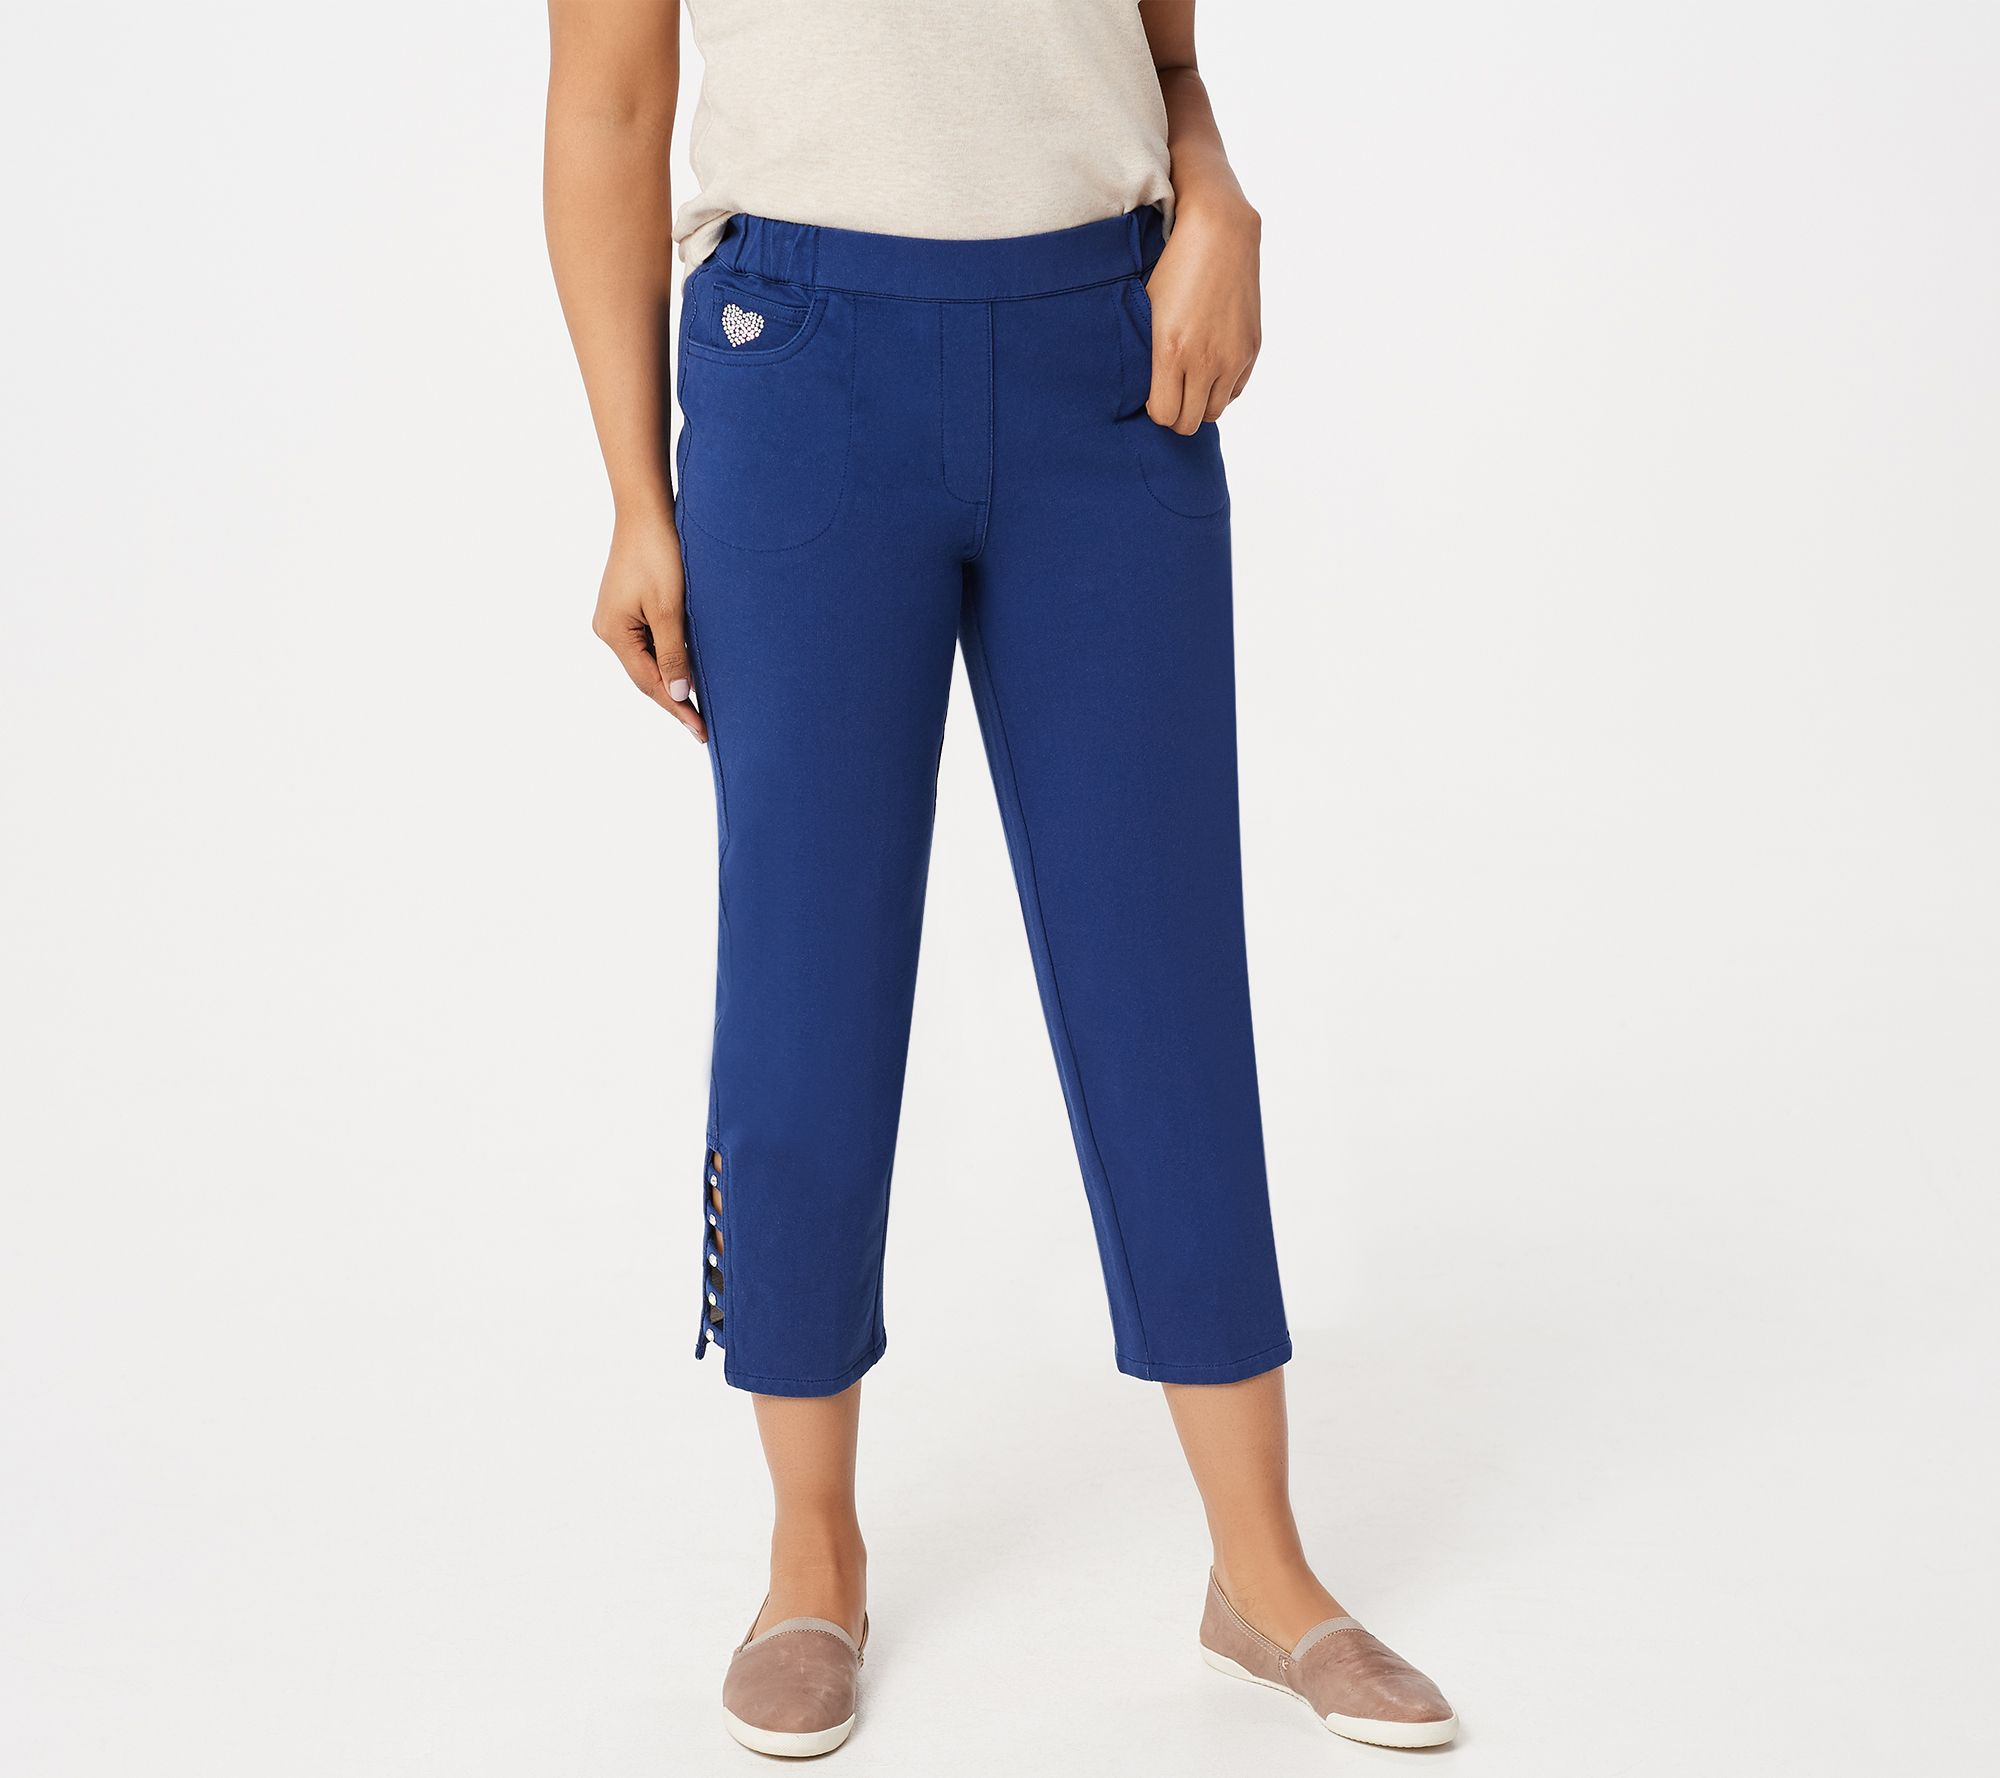 32b9e63165acb Quacker Factory DreamJeannes Ladder Hem Cropped Pants with Bling - Page 1 —  QVC.com